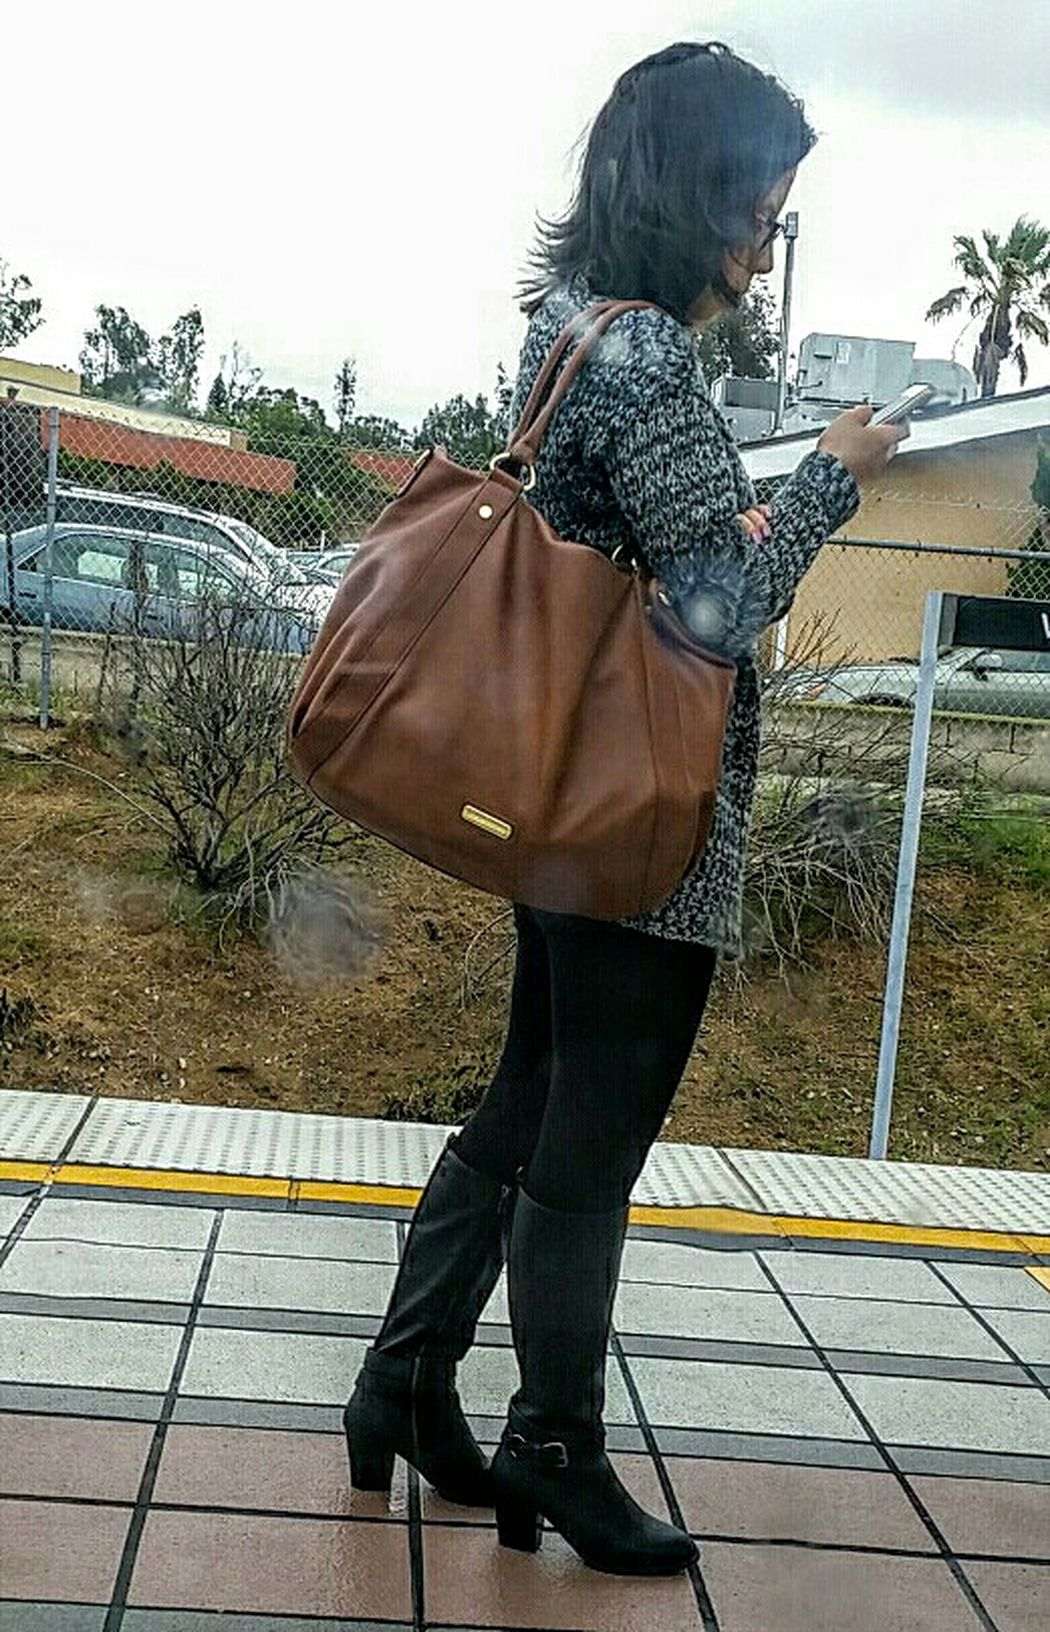 Lady waiting for a train!!